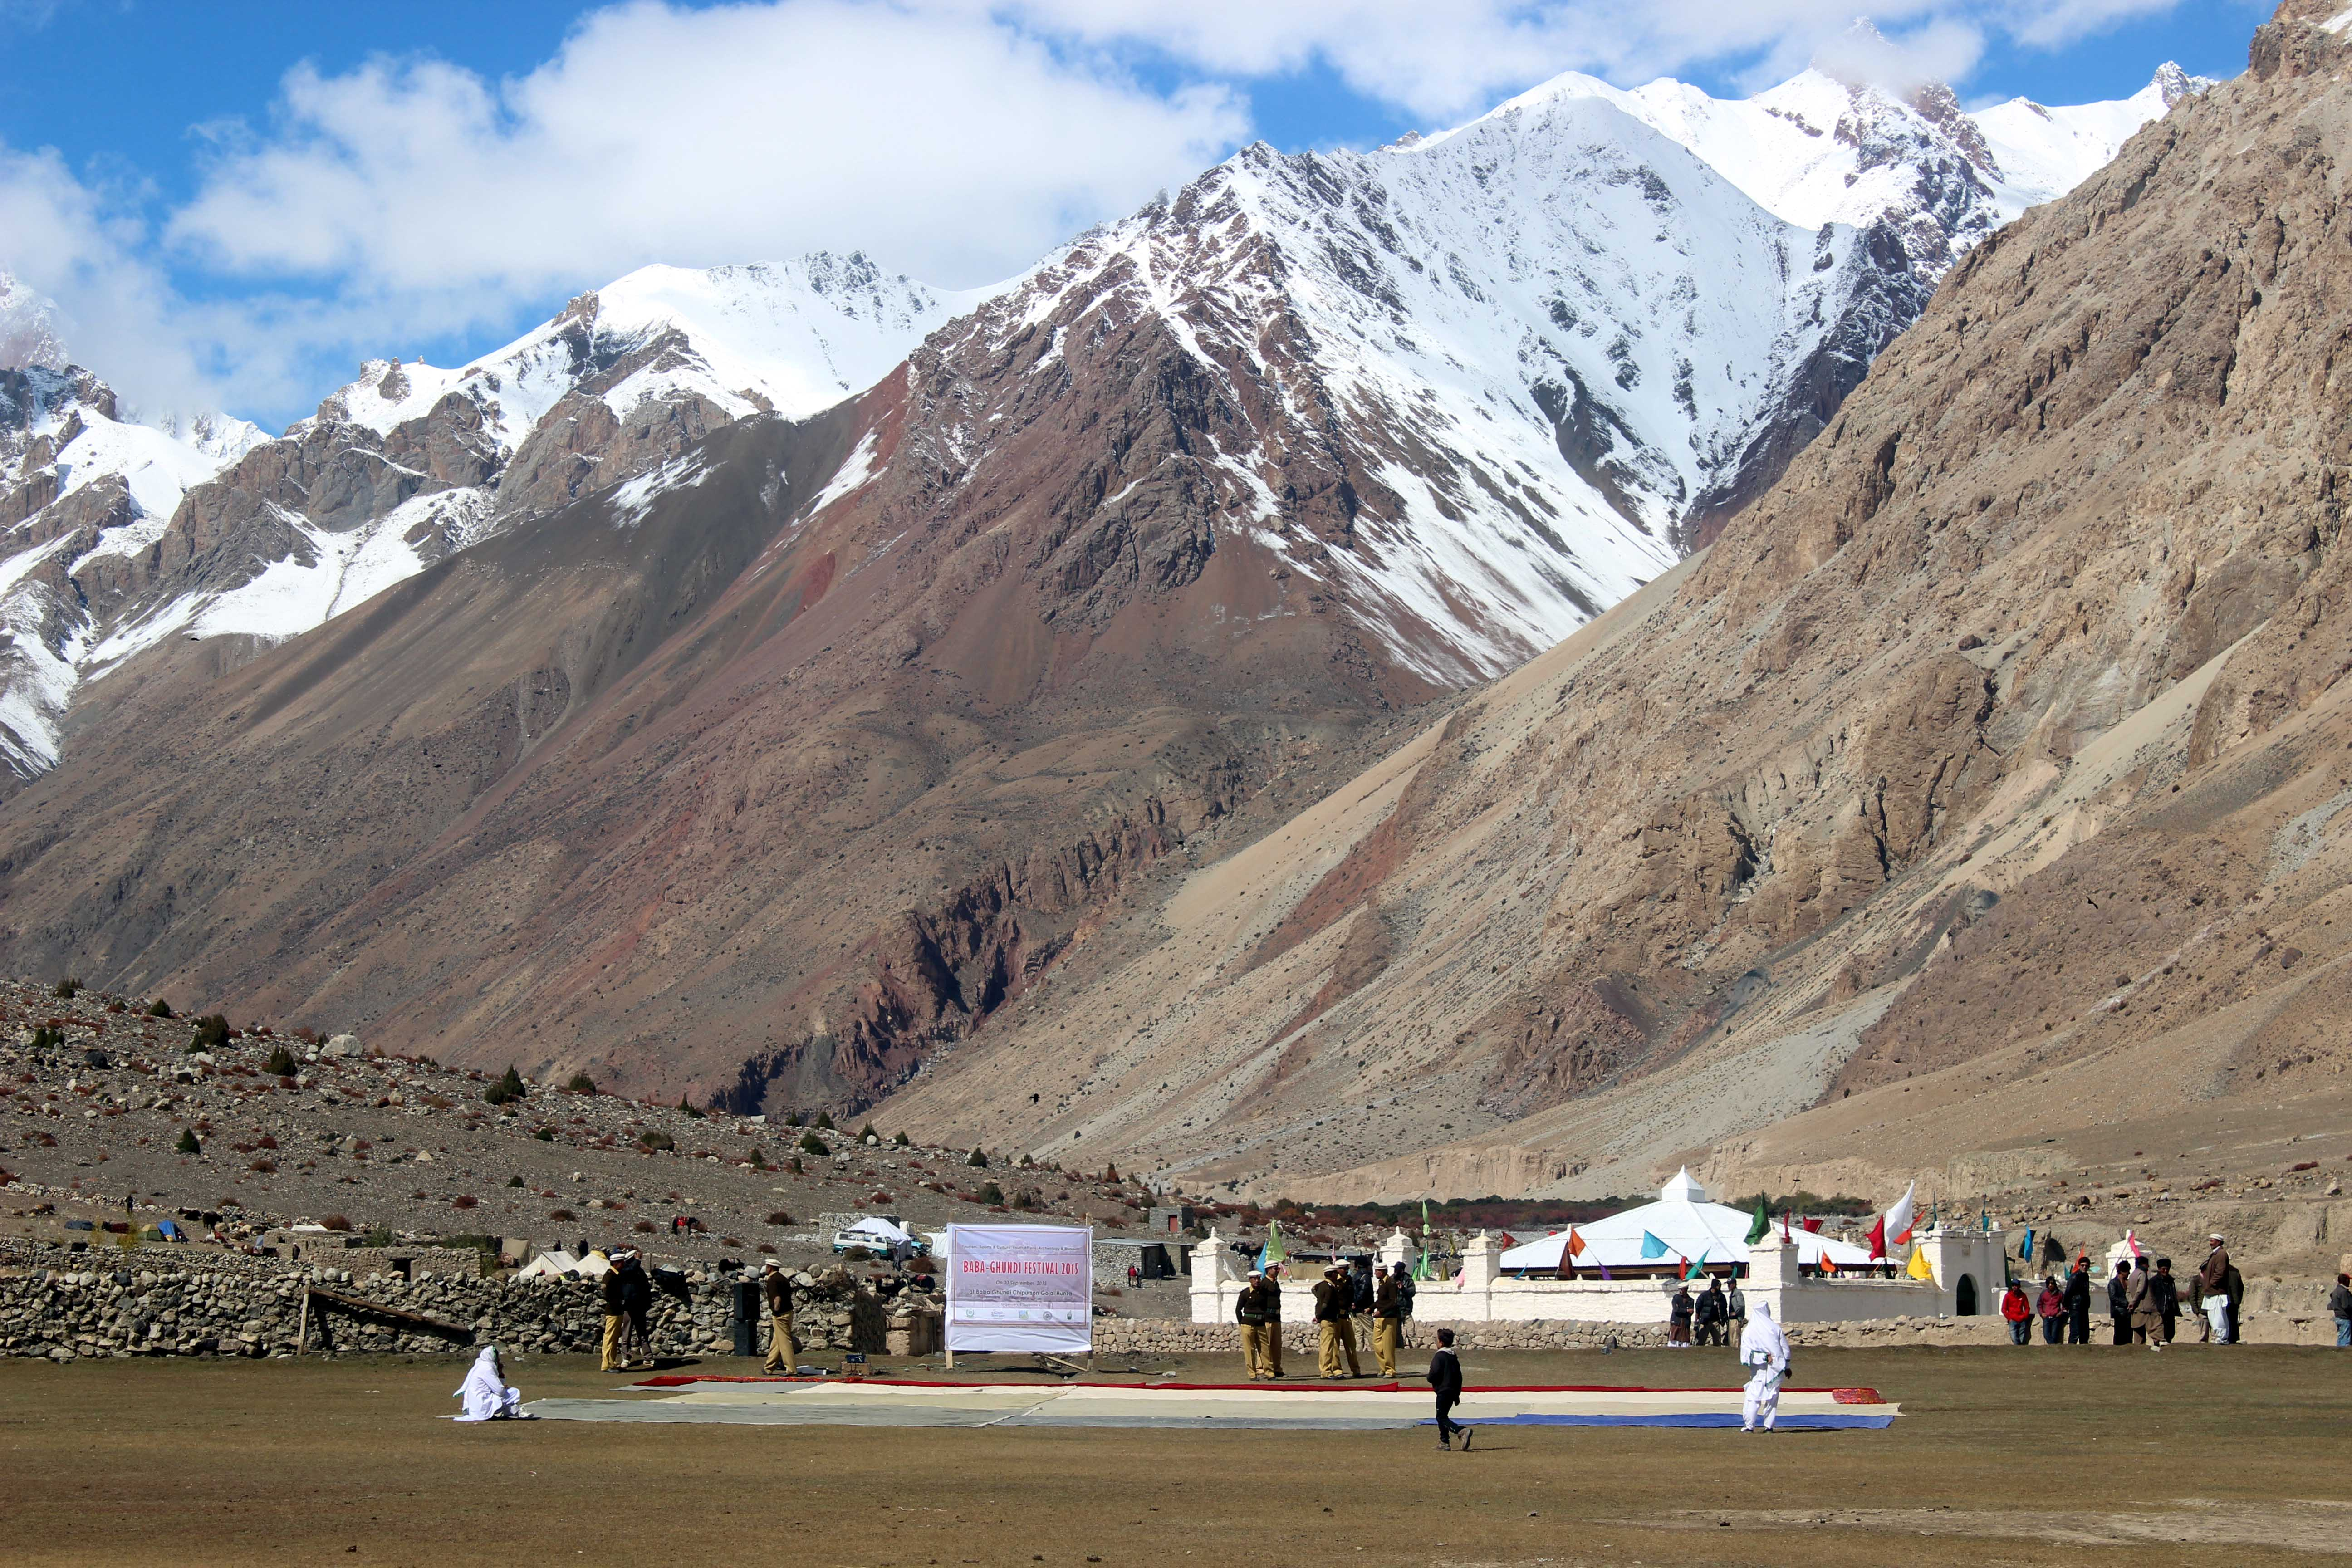 A view of the Baba Ghundi Shrine with a snow-capped mountain in the background